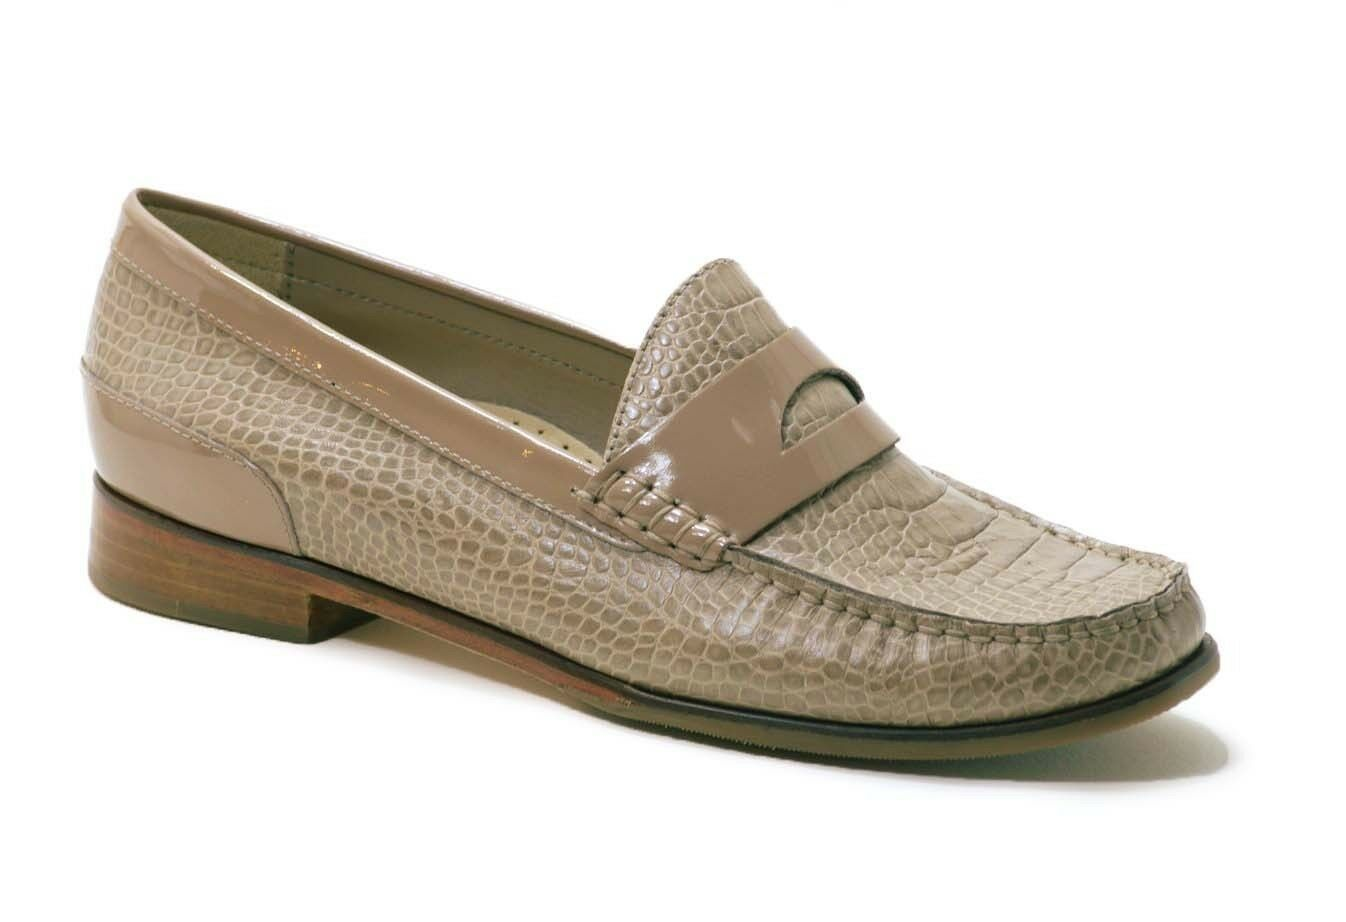 Cole Haan LAUREL Moc Maple Sugar  Croc Print Leather Lofers scarpe donna 7 NIB  Miglior prezzo